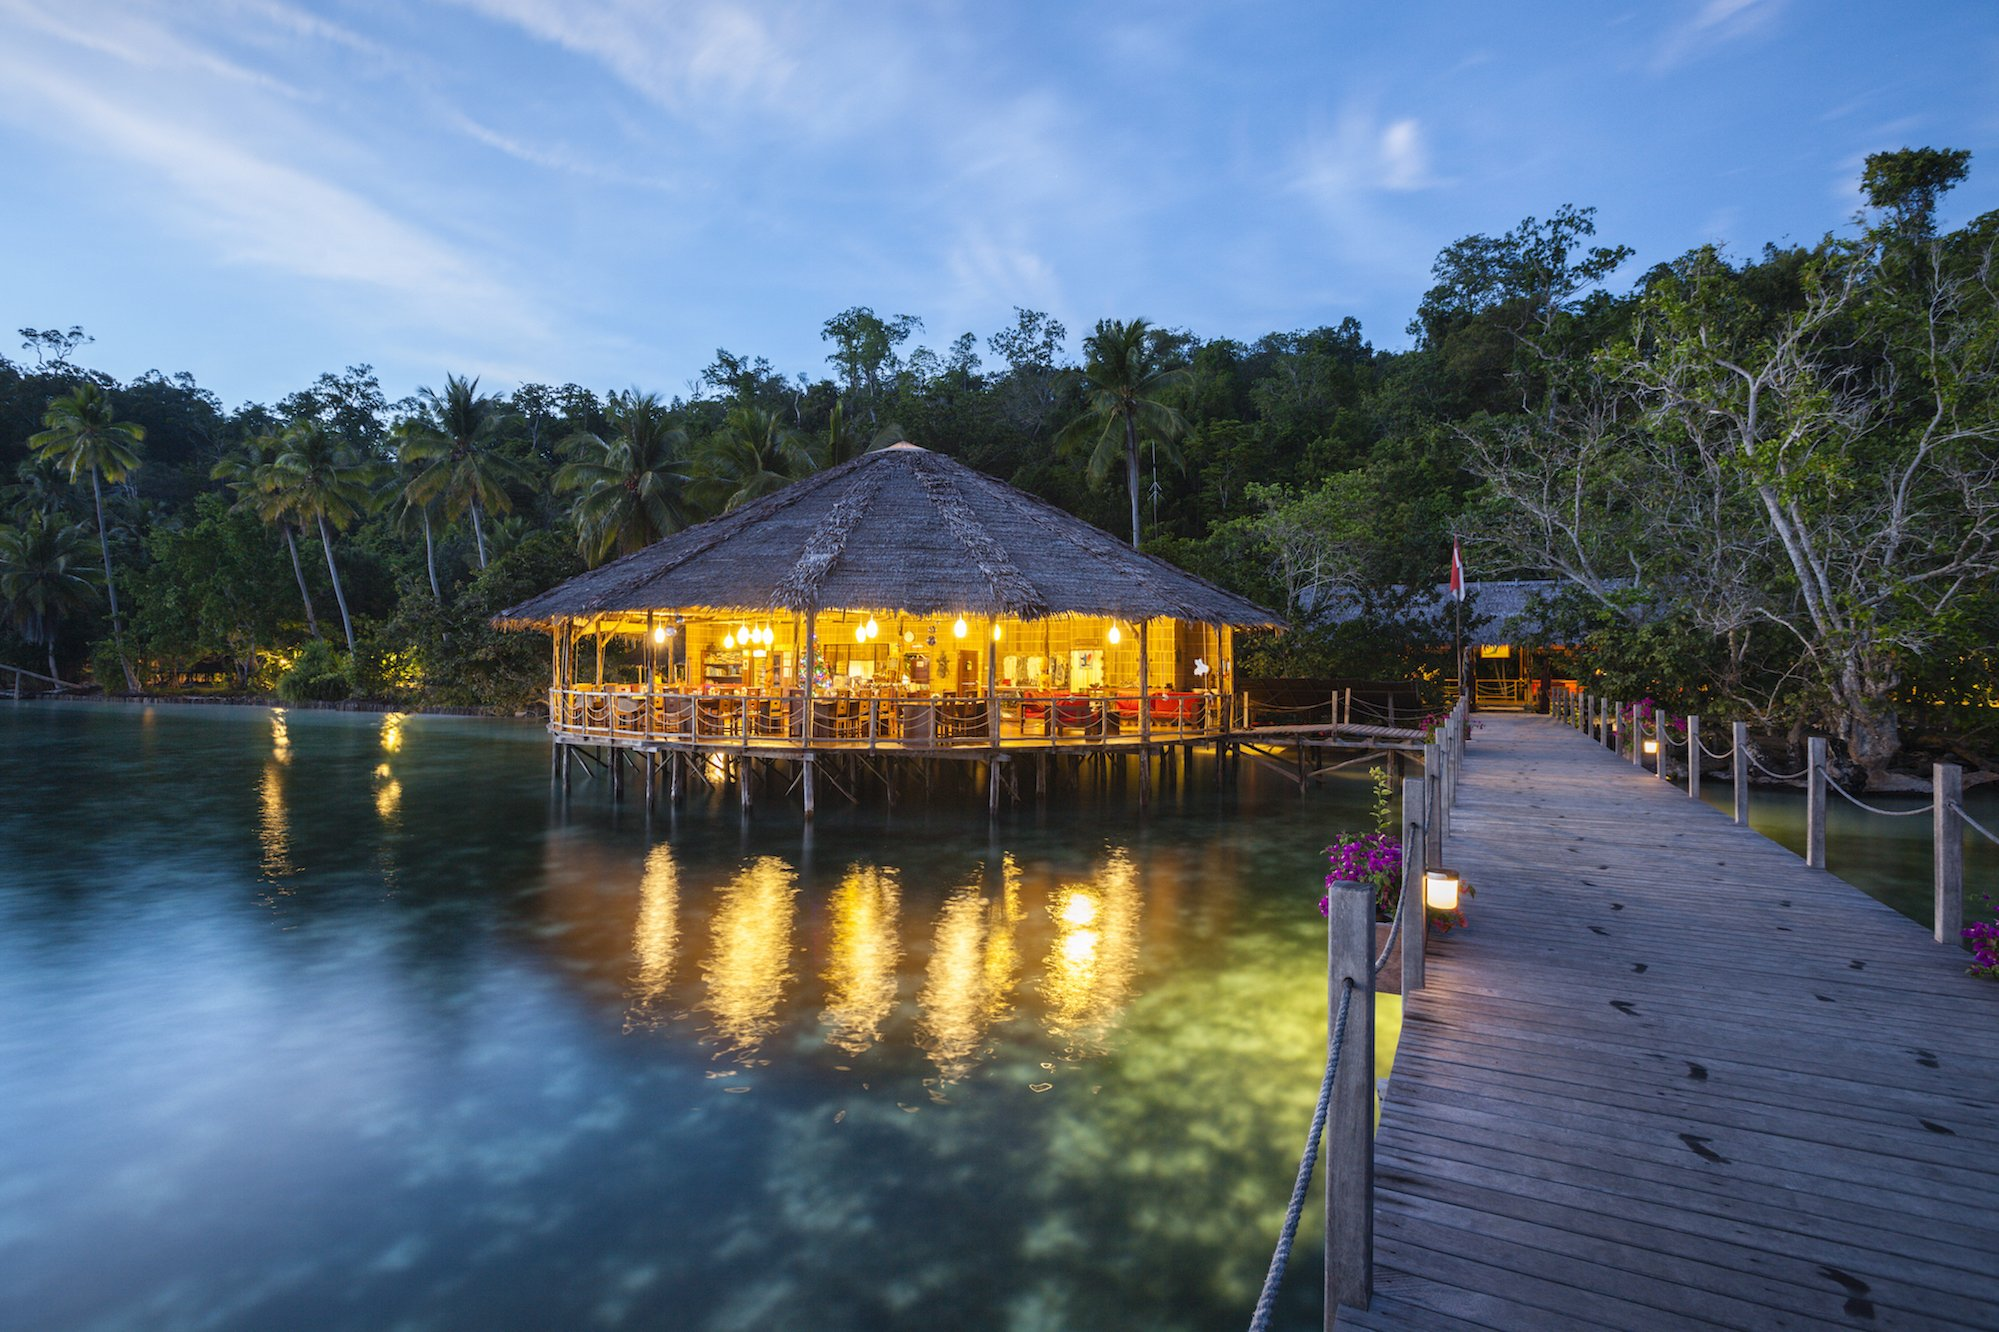 our cozy restaurant built on the waters of Raja Ampat with lush rainforest in the back